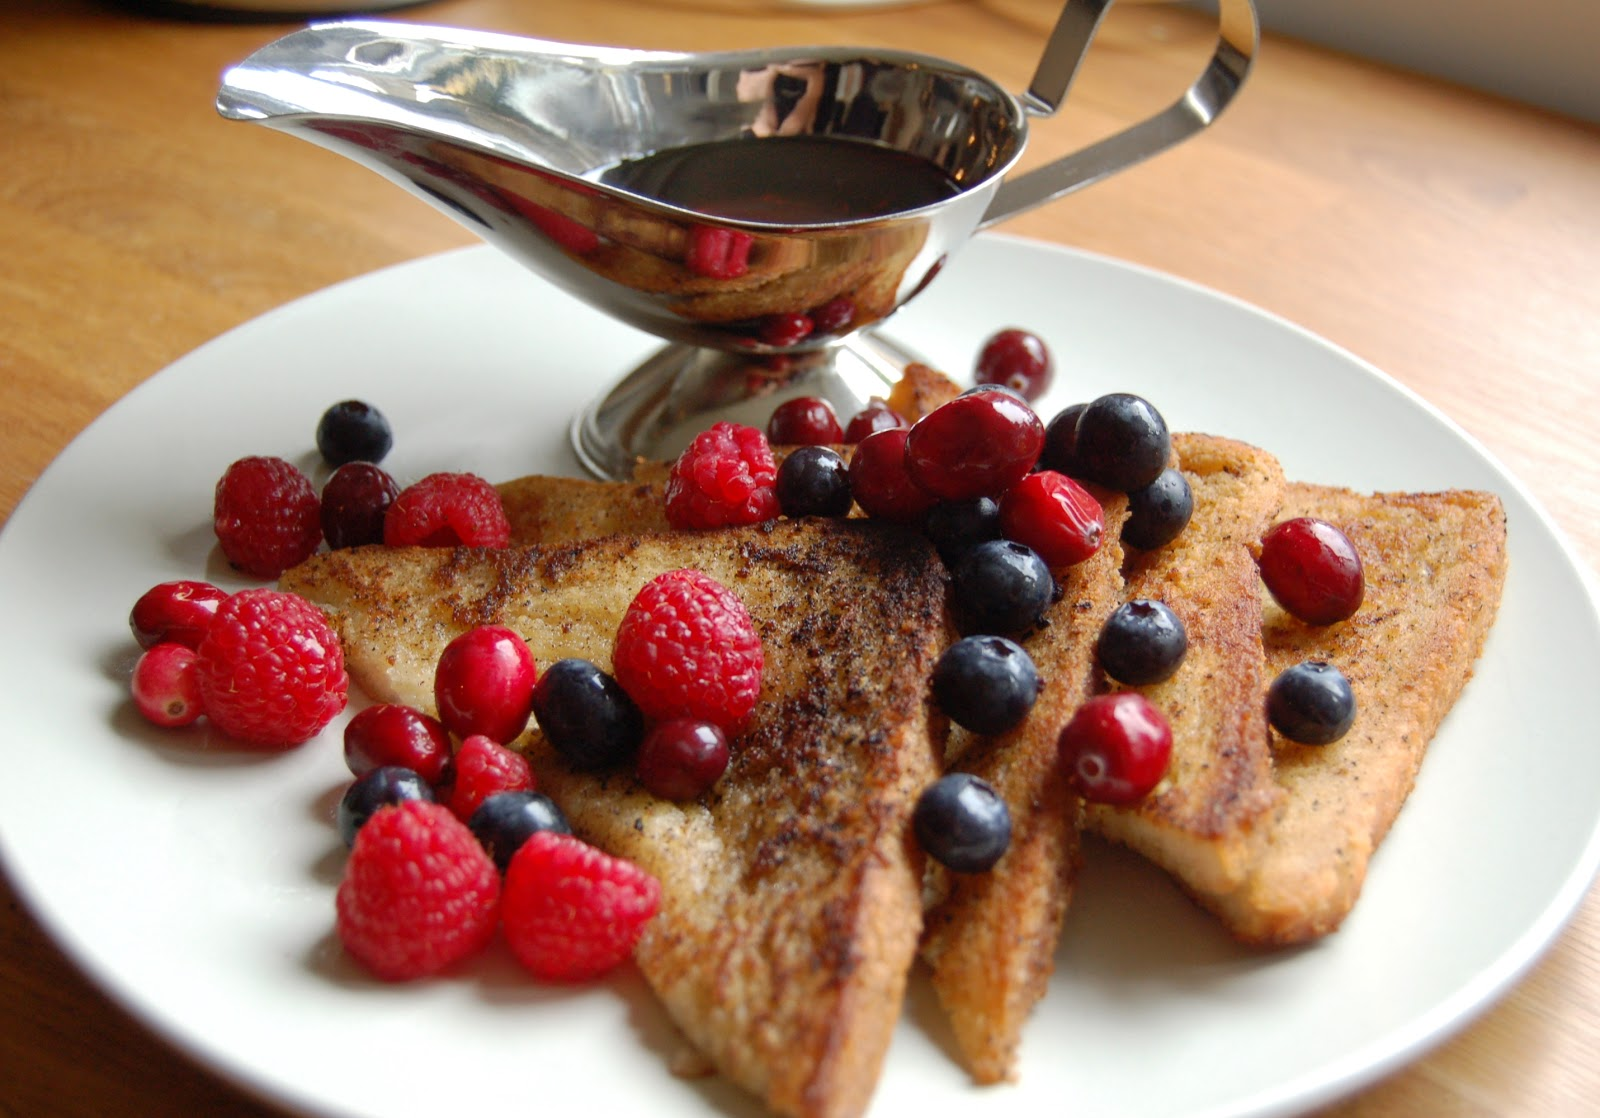 French cliche - French toast